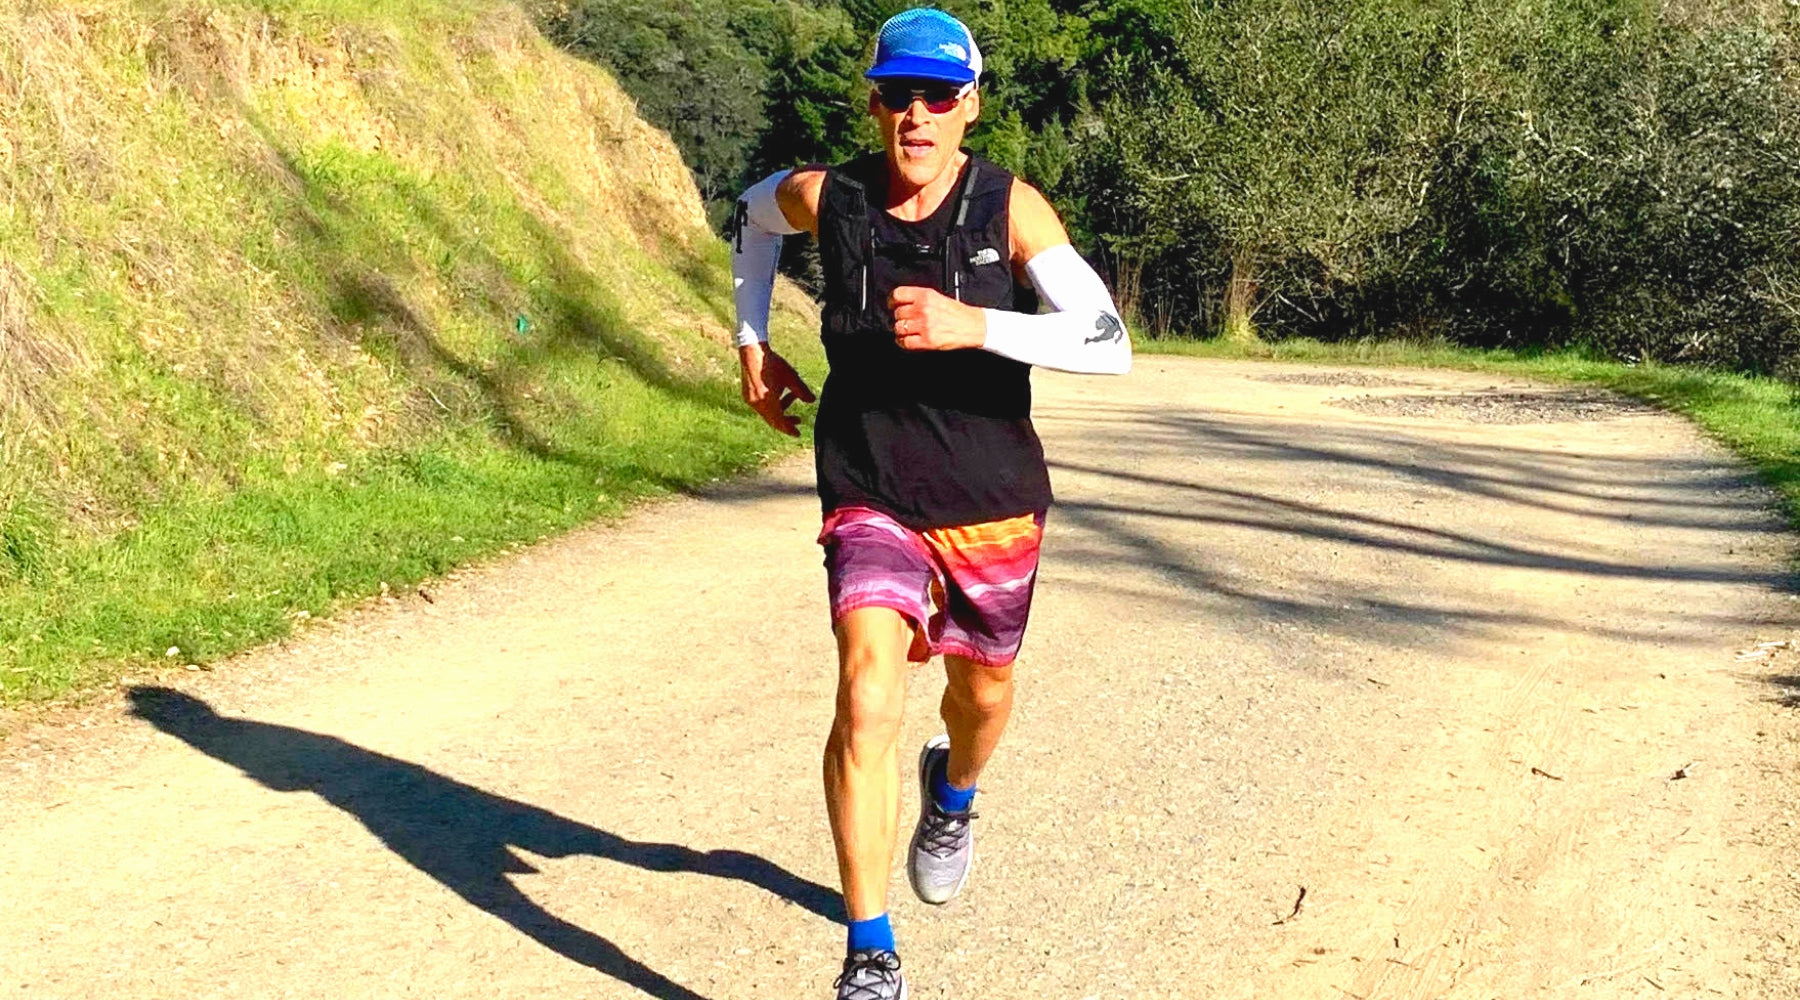 Zensah teams up with Dean Karnazes